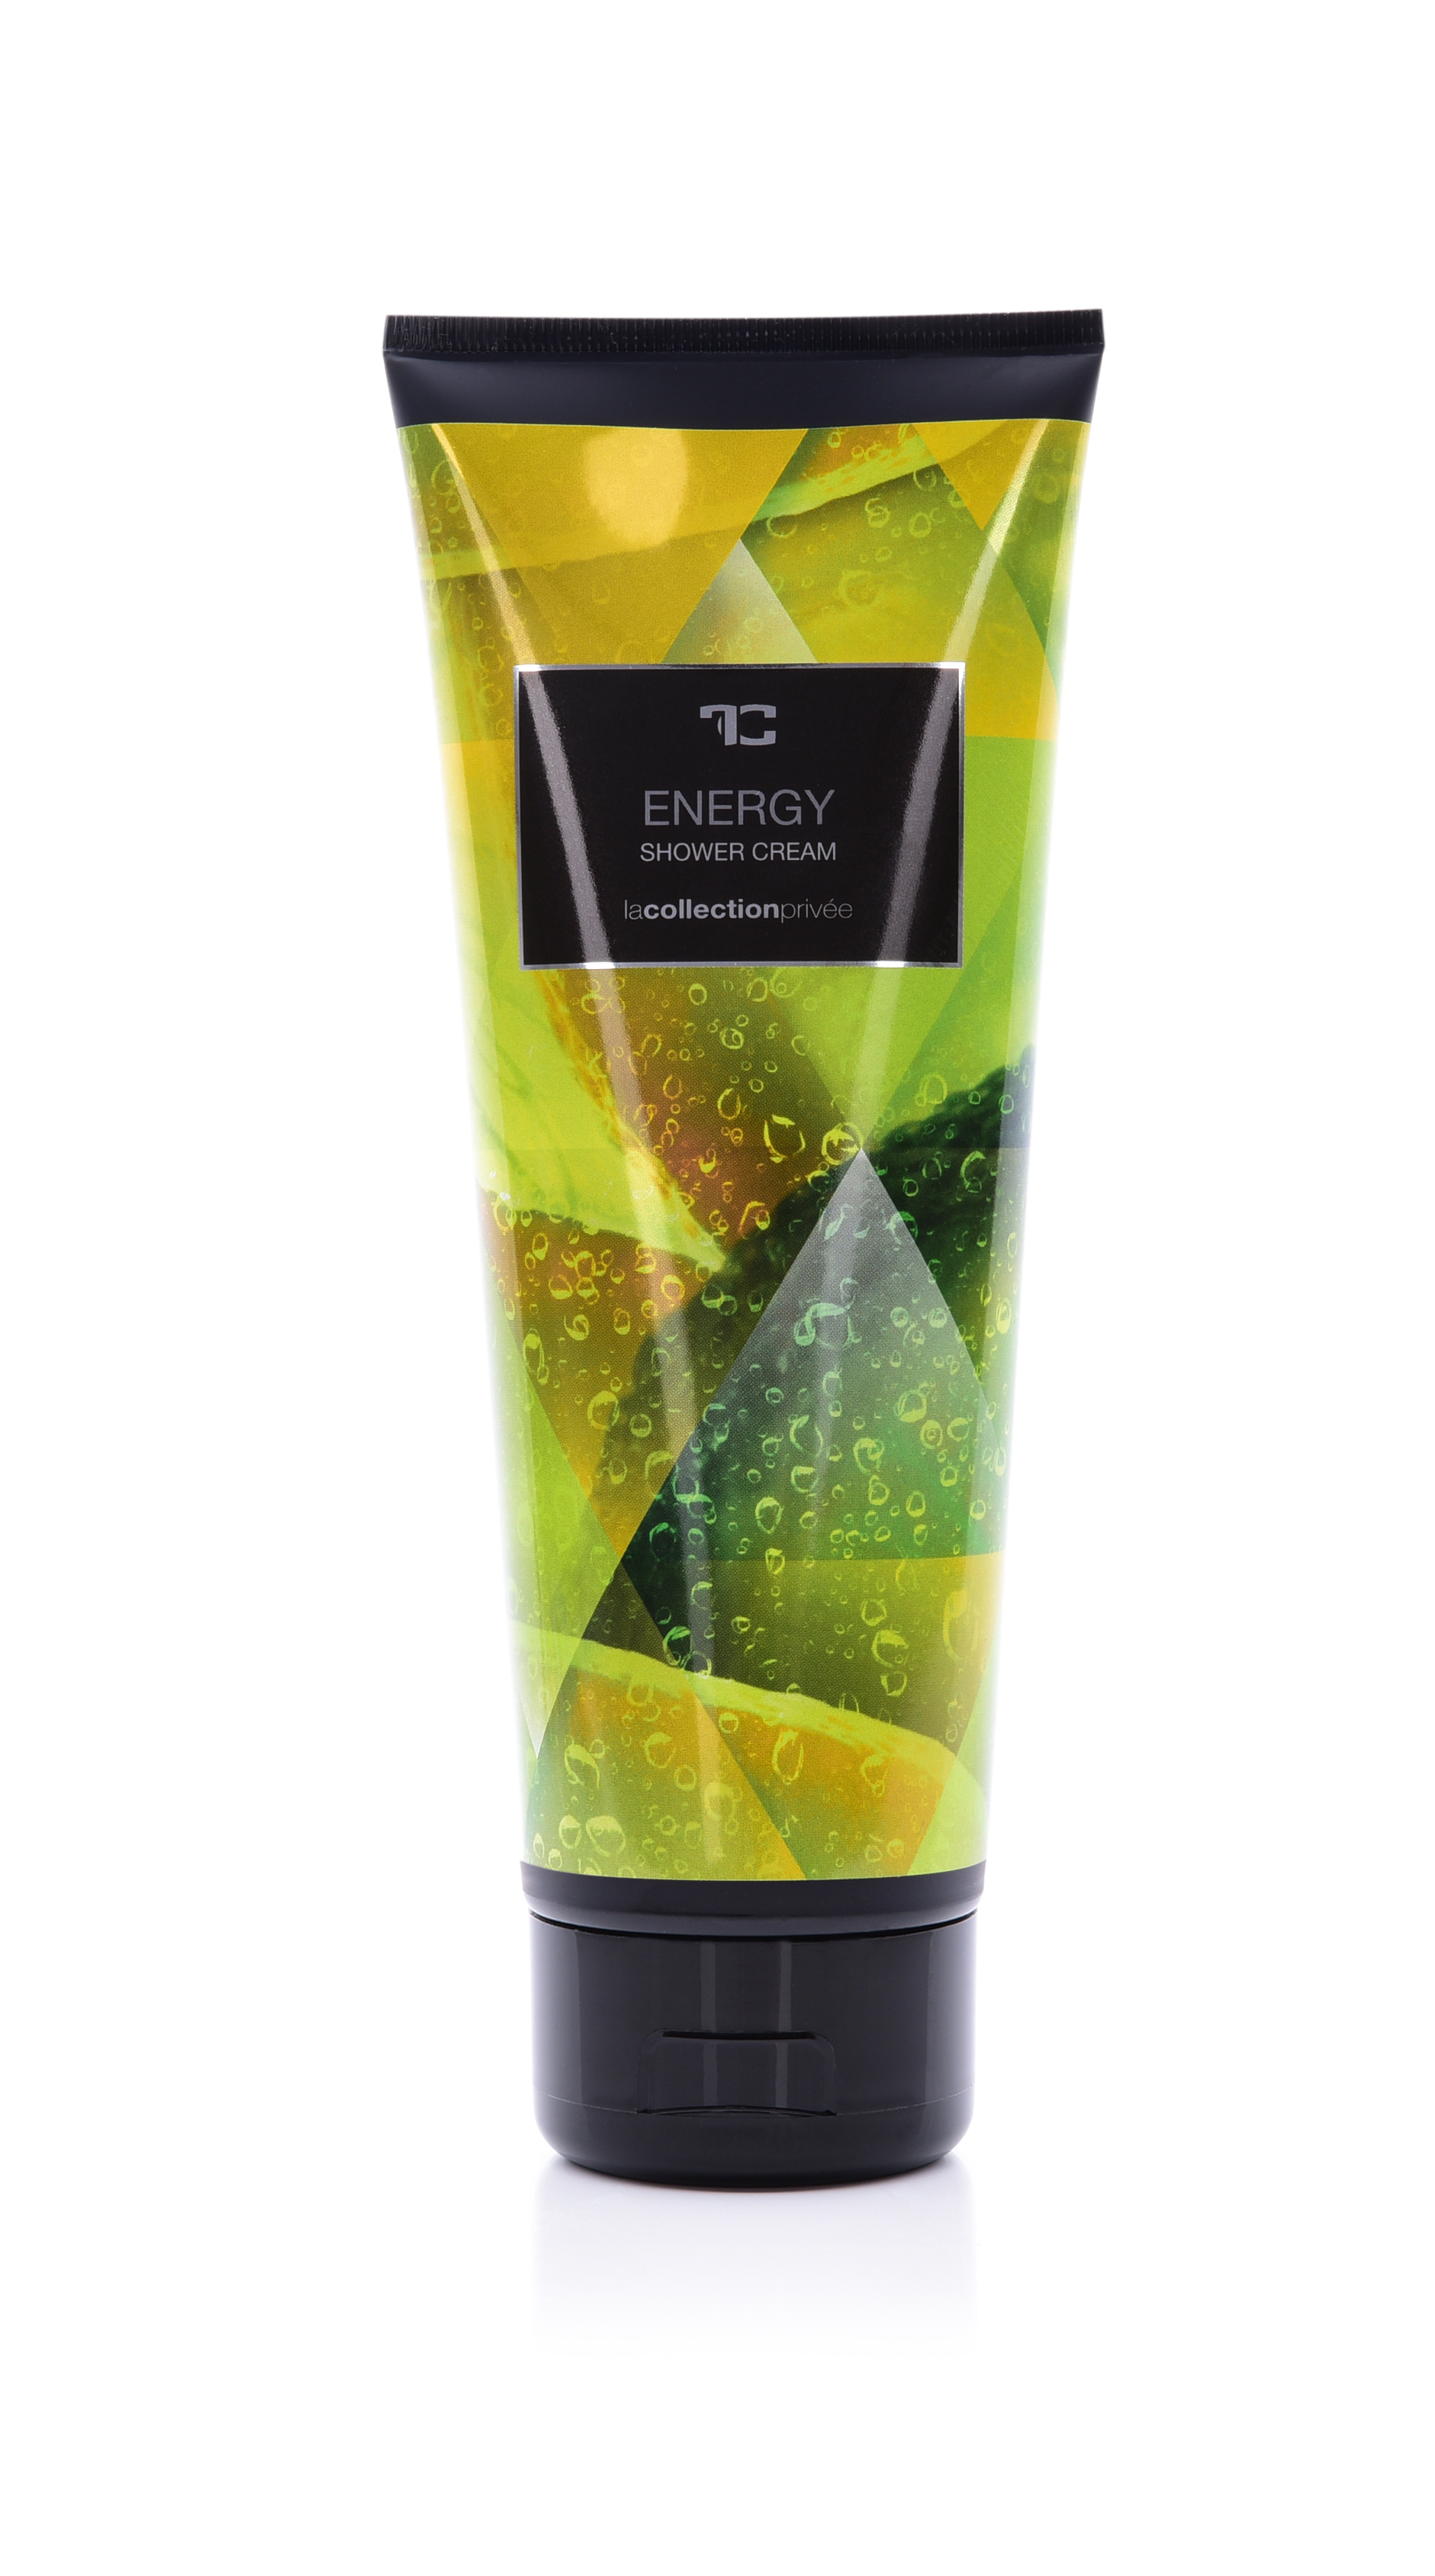 SHOWER CREAM 200 ml energy LA COLLECTION PRIVÉE